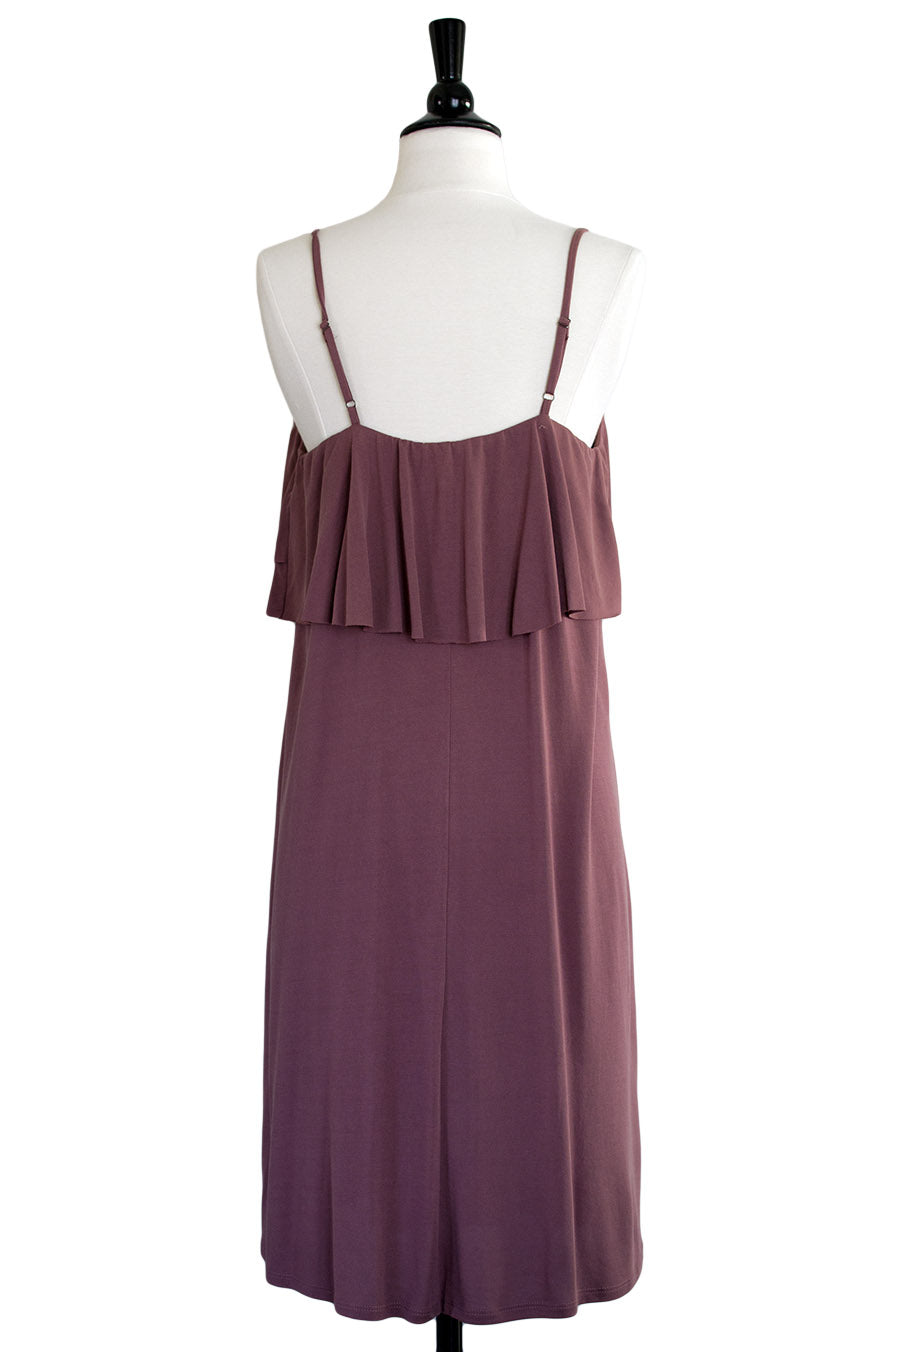 c5ebe5bd430 ... Hourglass Boutique - Mina Tiered Slip Dress in Desert Rose - 3 ...